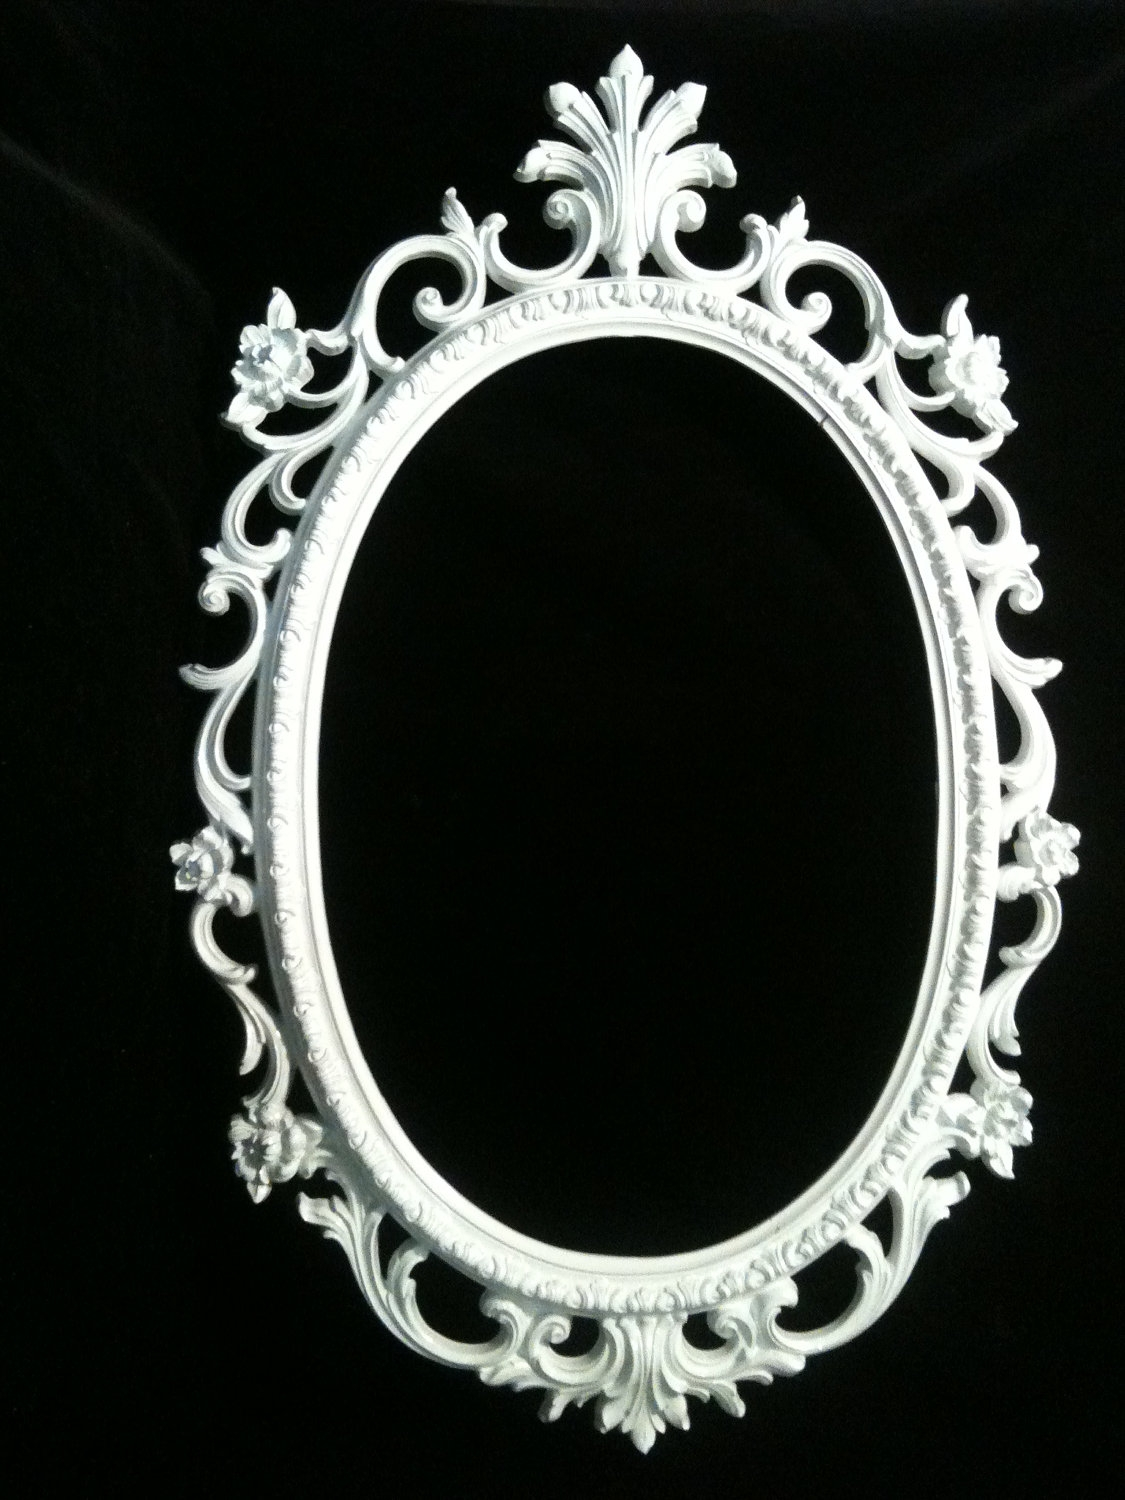 Gloss White Oval Picture Frame Mirror Shab Chic Baroque Gothic In White Oval Mirrors (Image 3 of 15)